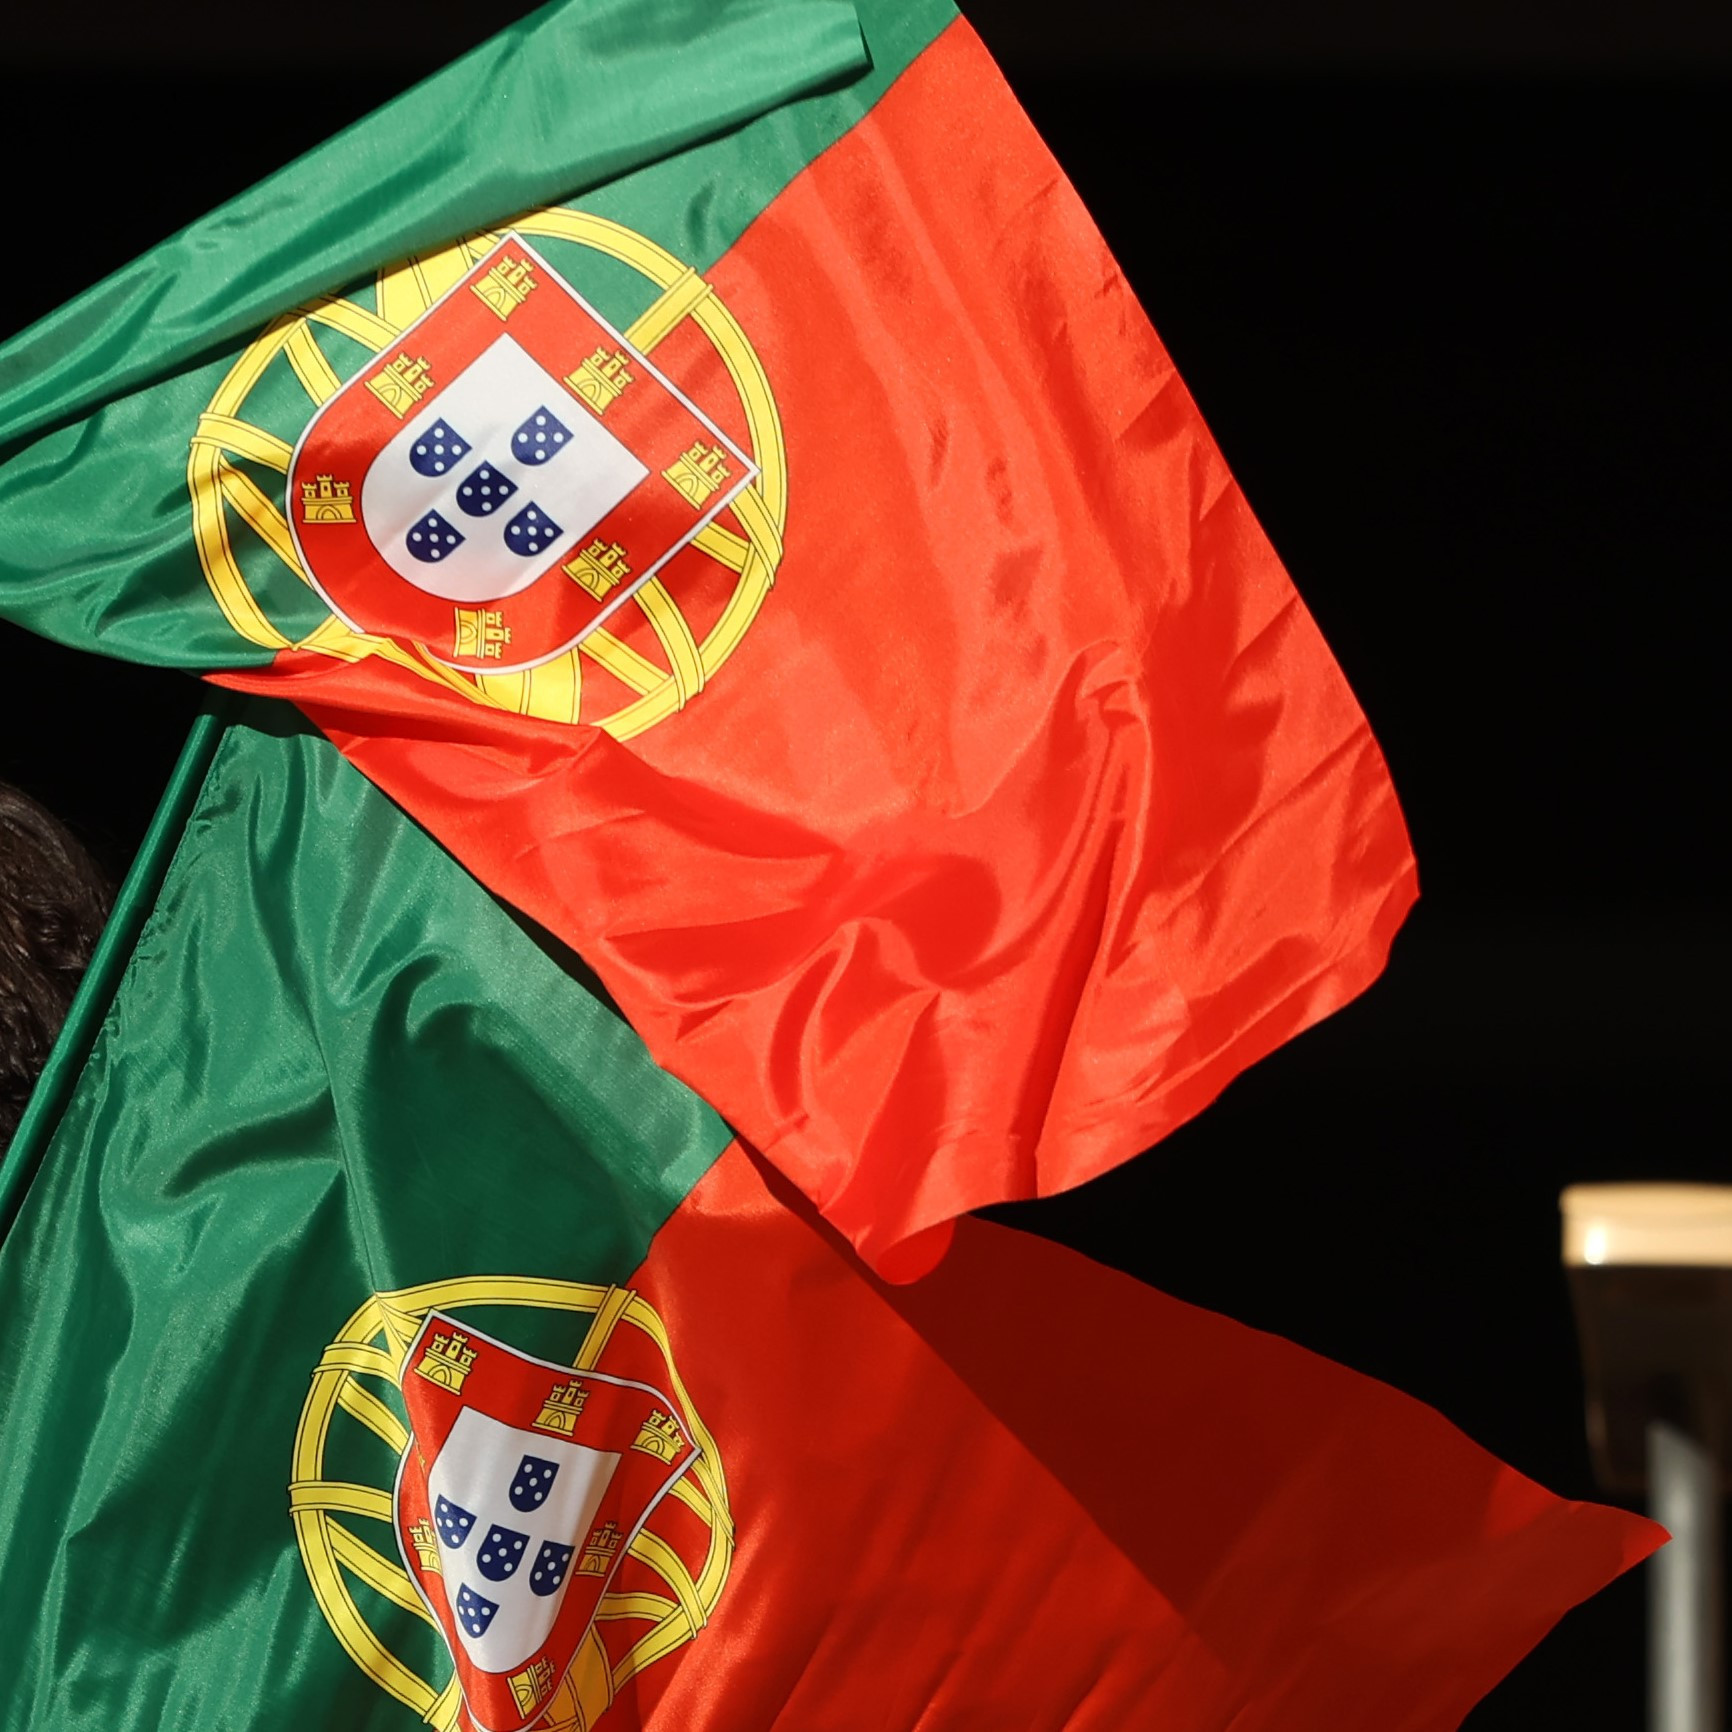 Portugal broke RGF dominance at the Acrobatic Gymnastics World Championships ©Getty Images